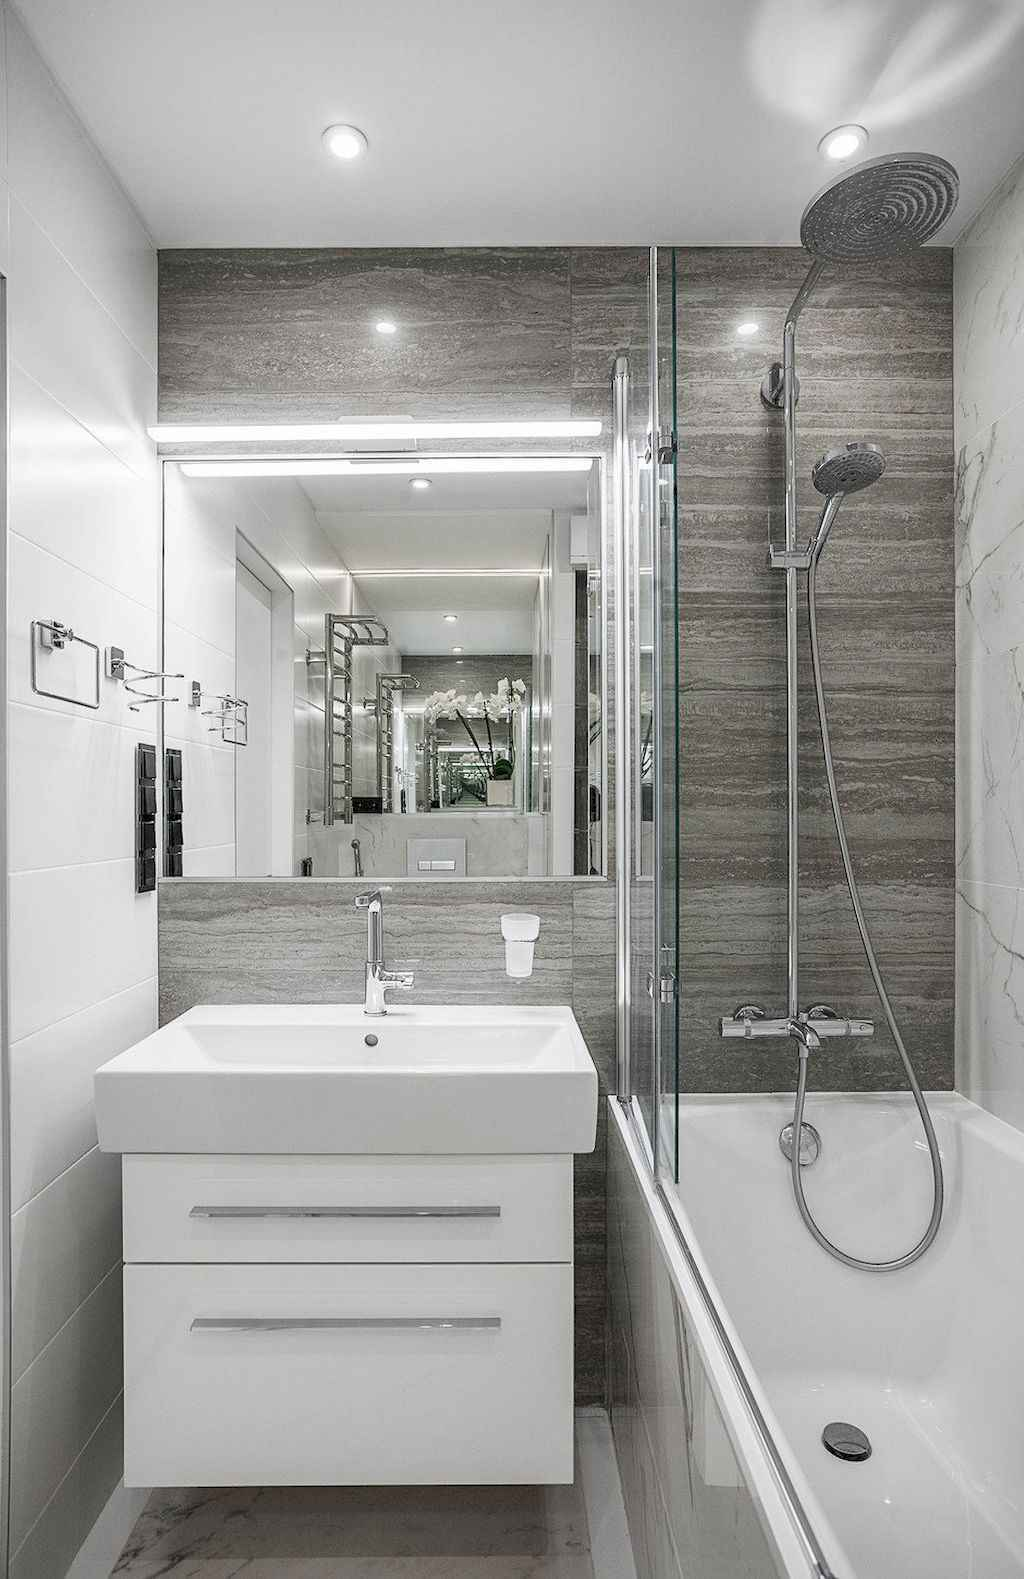 111 Awesome Small Bathroom Remodel Ideas On A Budget (86